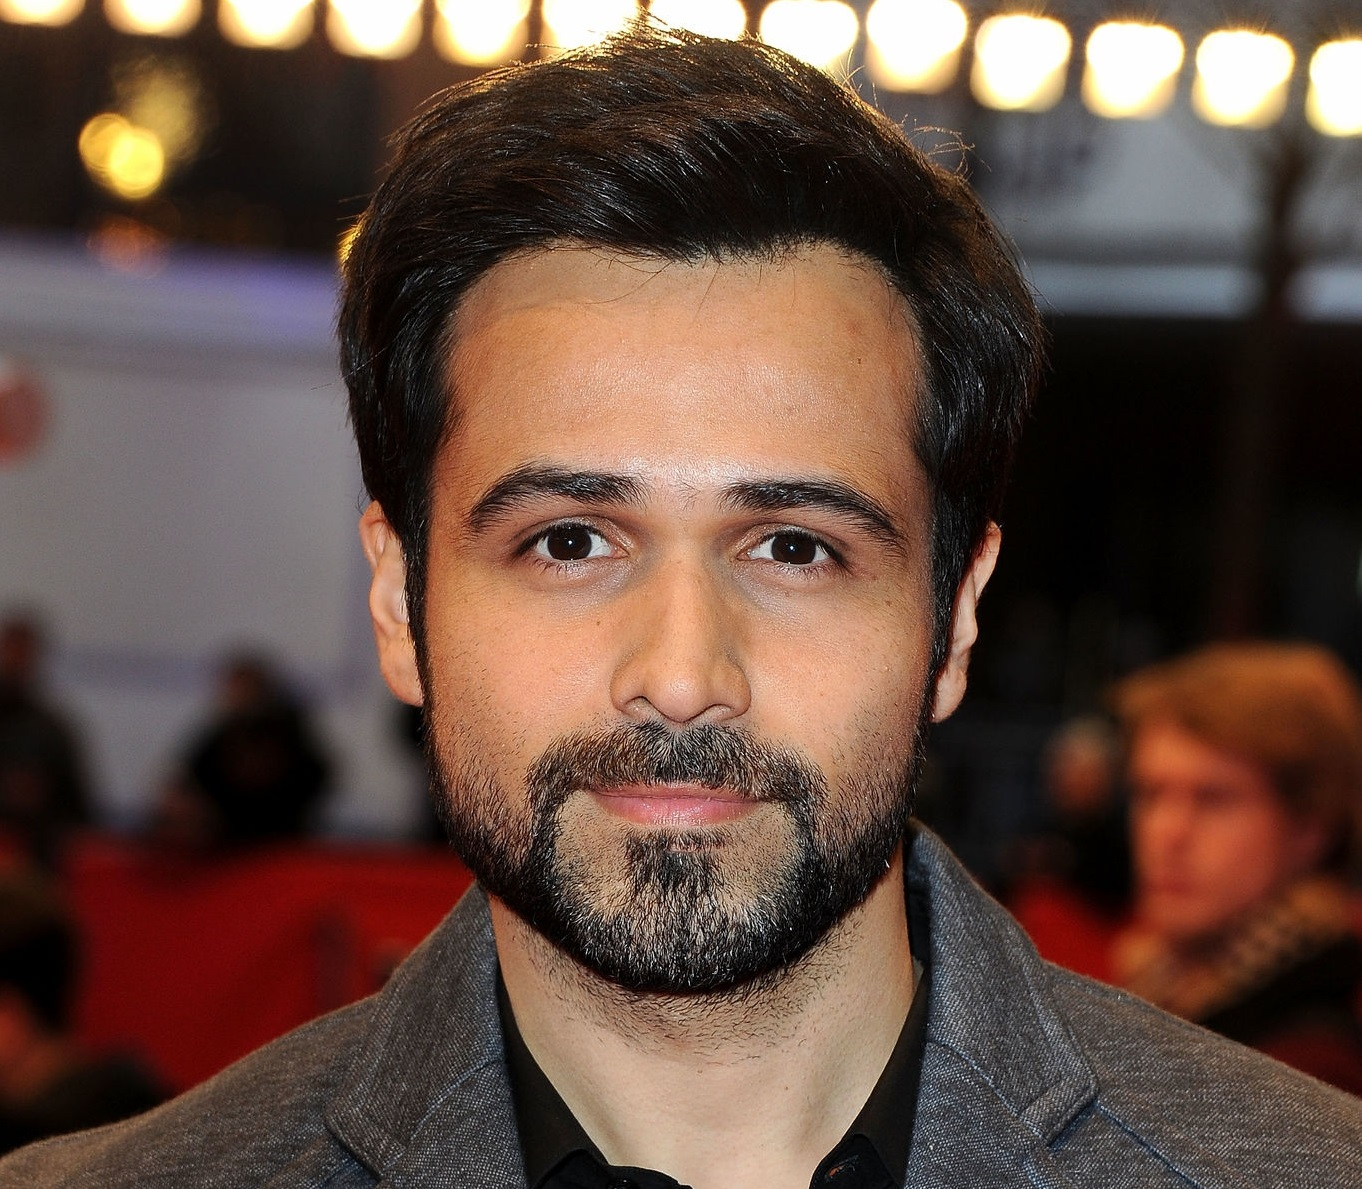 Emraan Hashmi (Photo by Pascal Le Segretain/Getty Images)